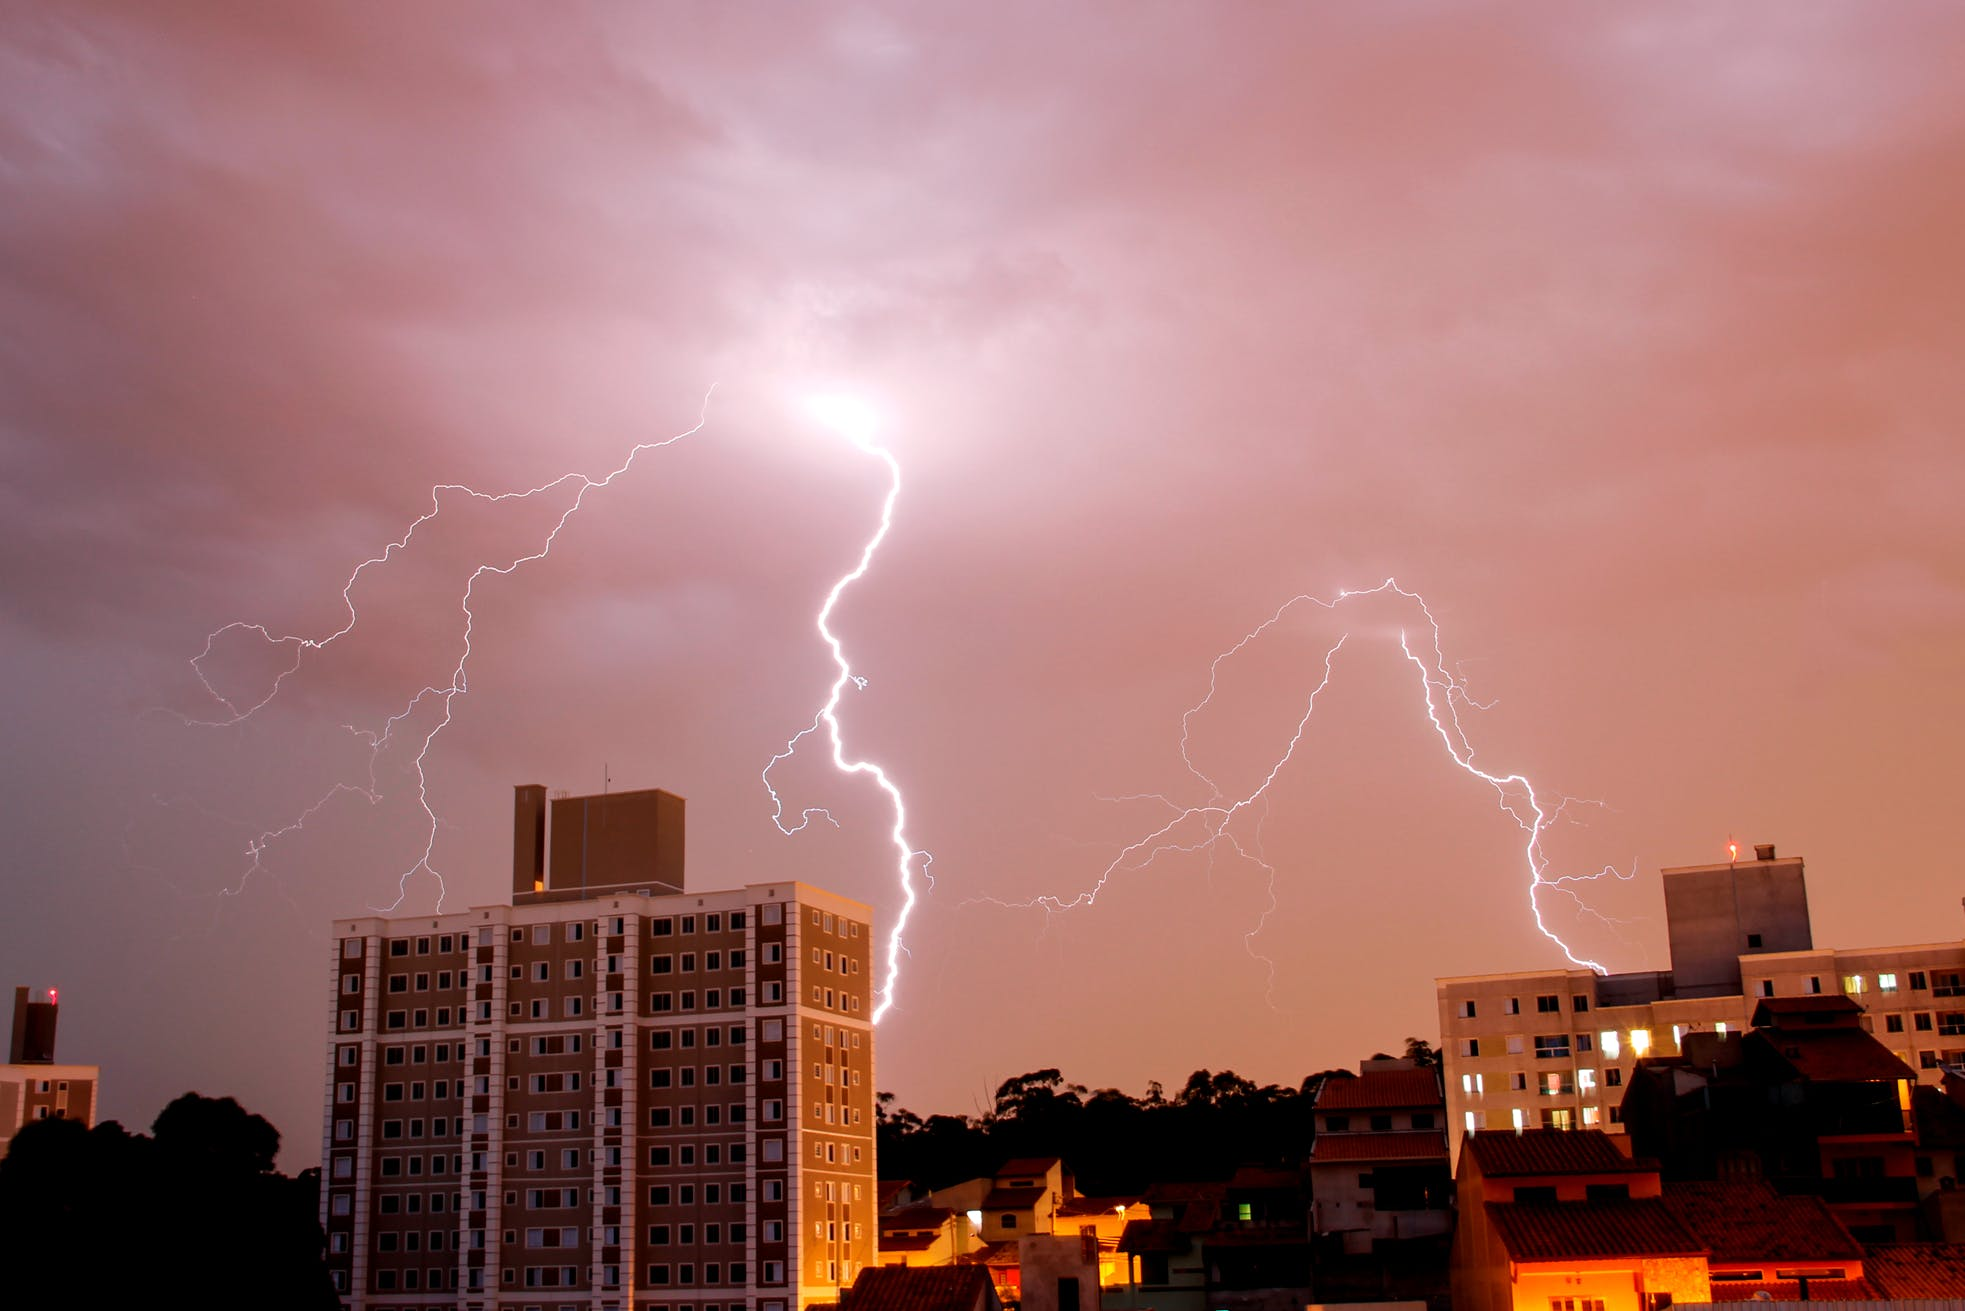 nature photography, thunderstorm